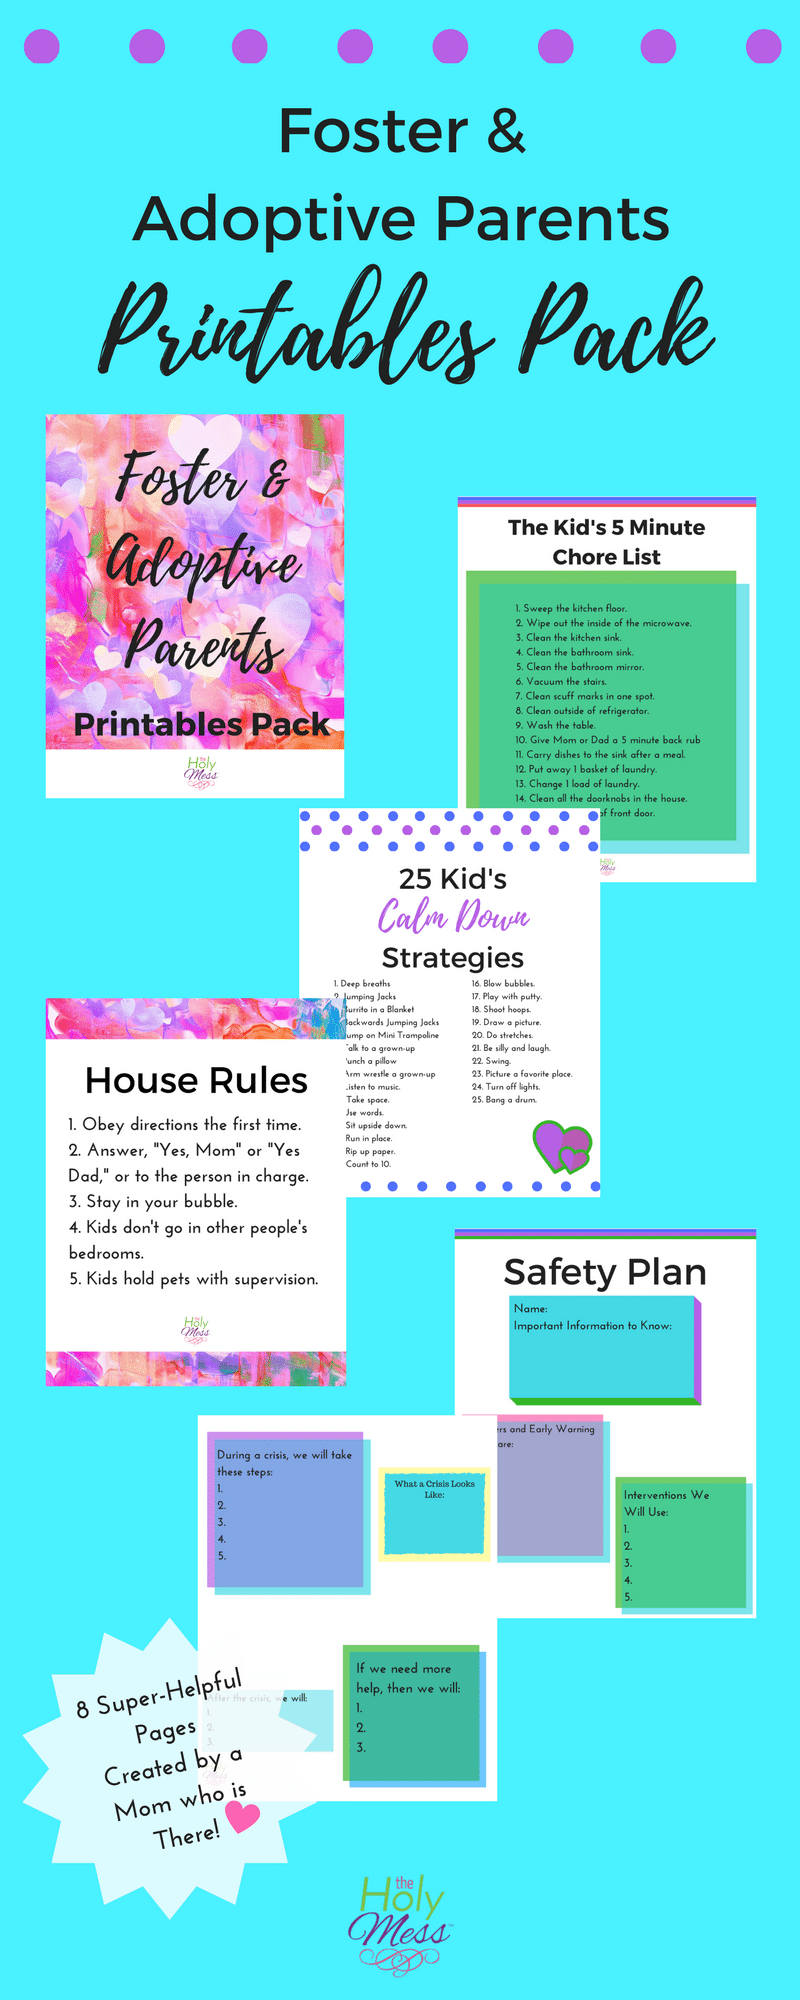 Foster and Adoptive Parents Printables Pack|The Holy Mess